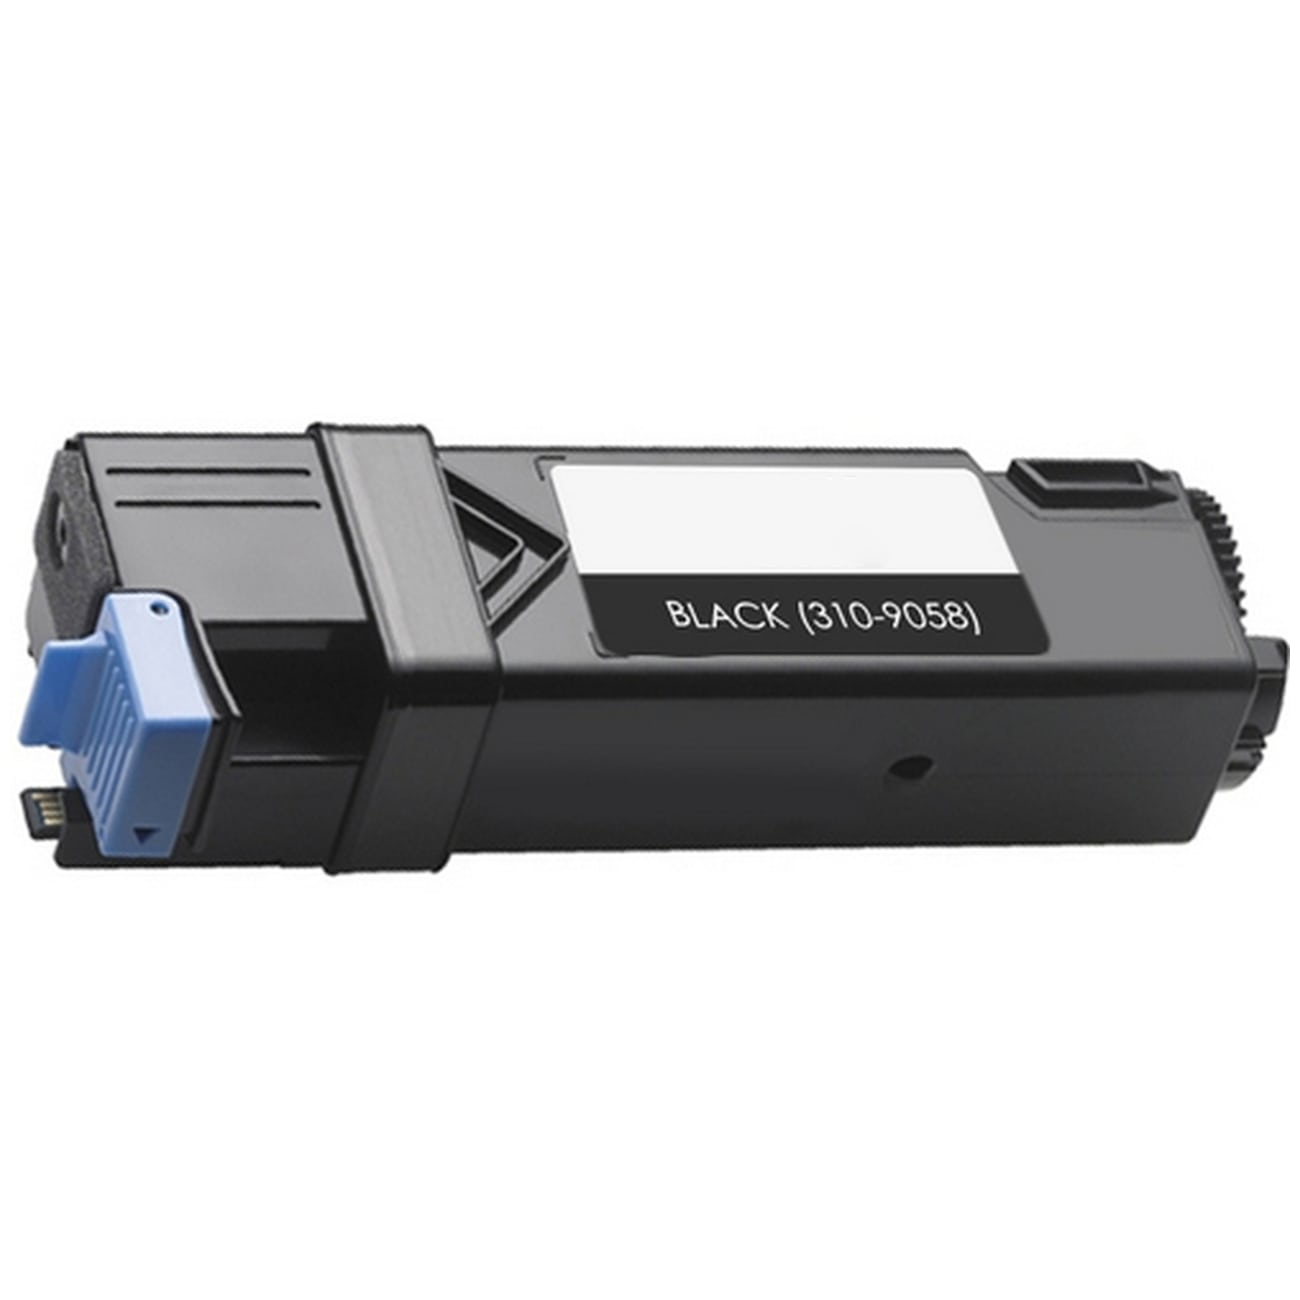 310-9058 Toner Cartridge - Dell New Compatible  (Black)